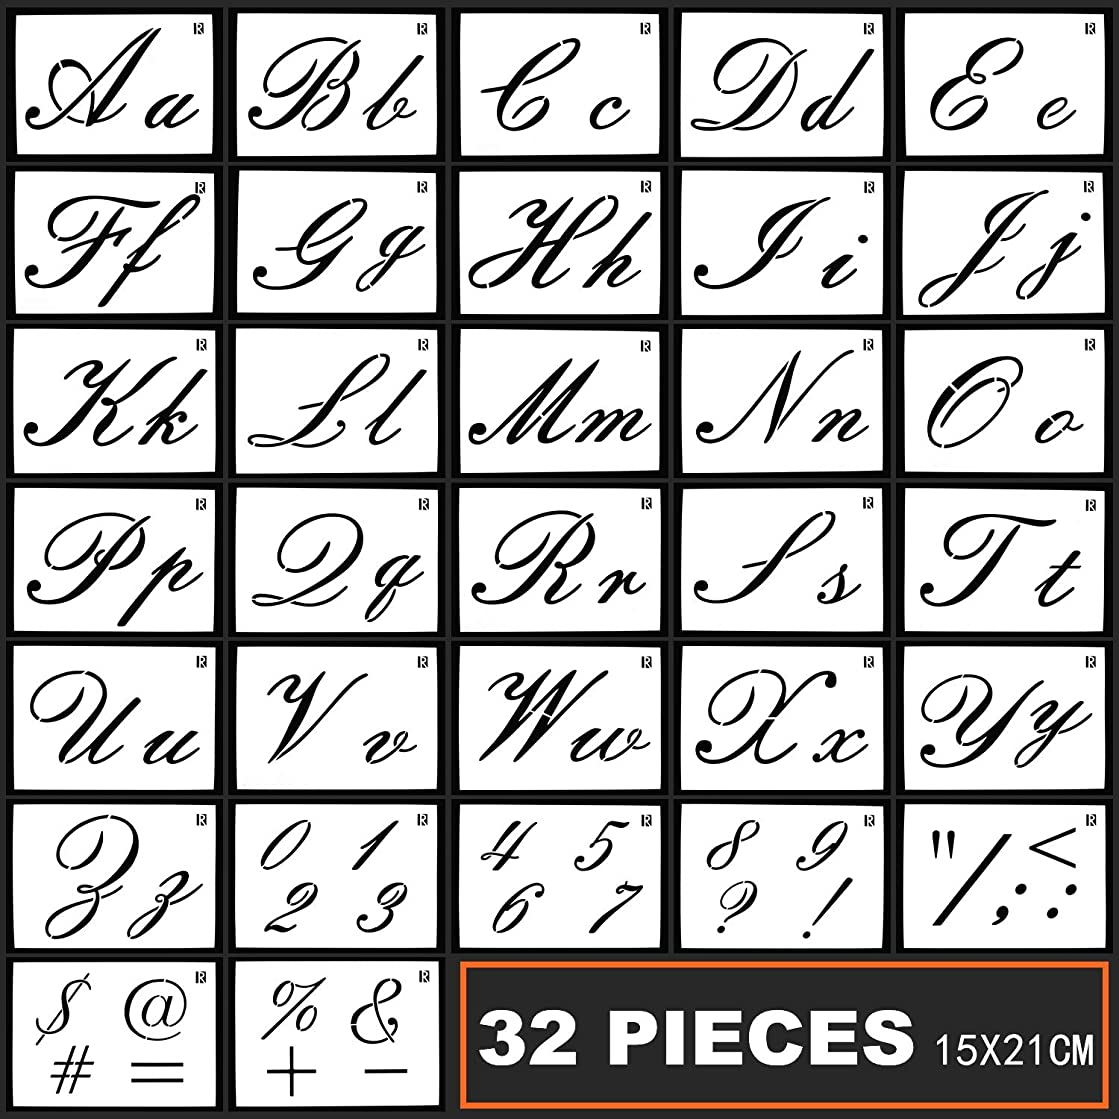 32 Pieces Alphabet Stencils Set Plastic Letter Stencils for Painting Learning, DIY Craft Decoration